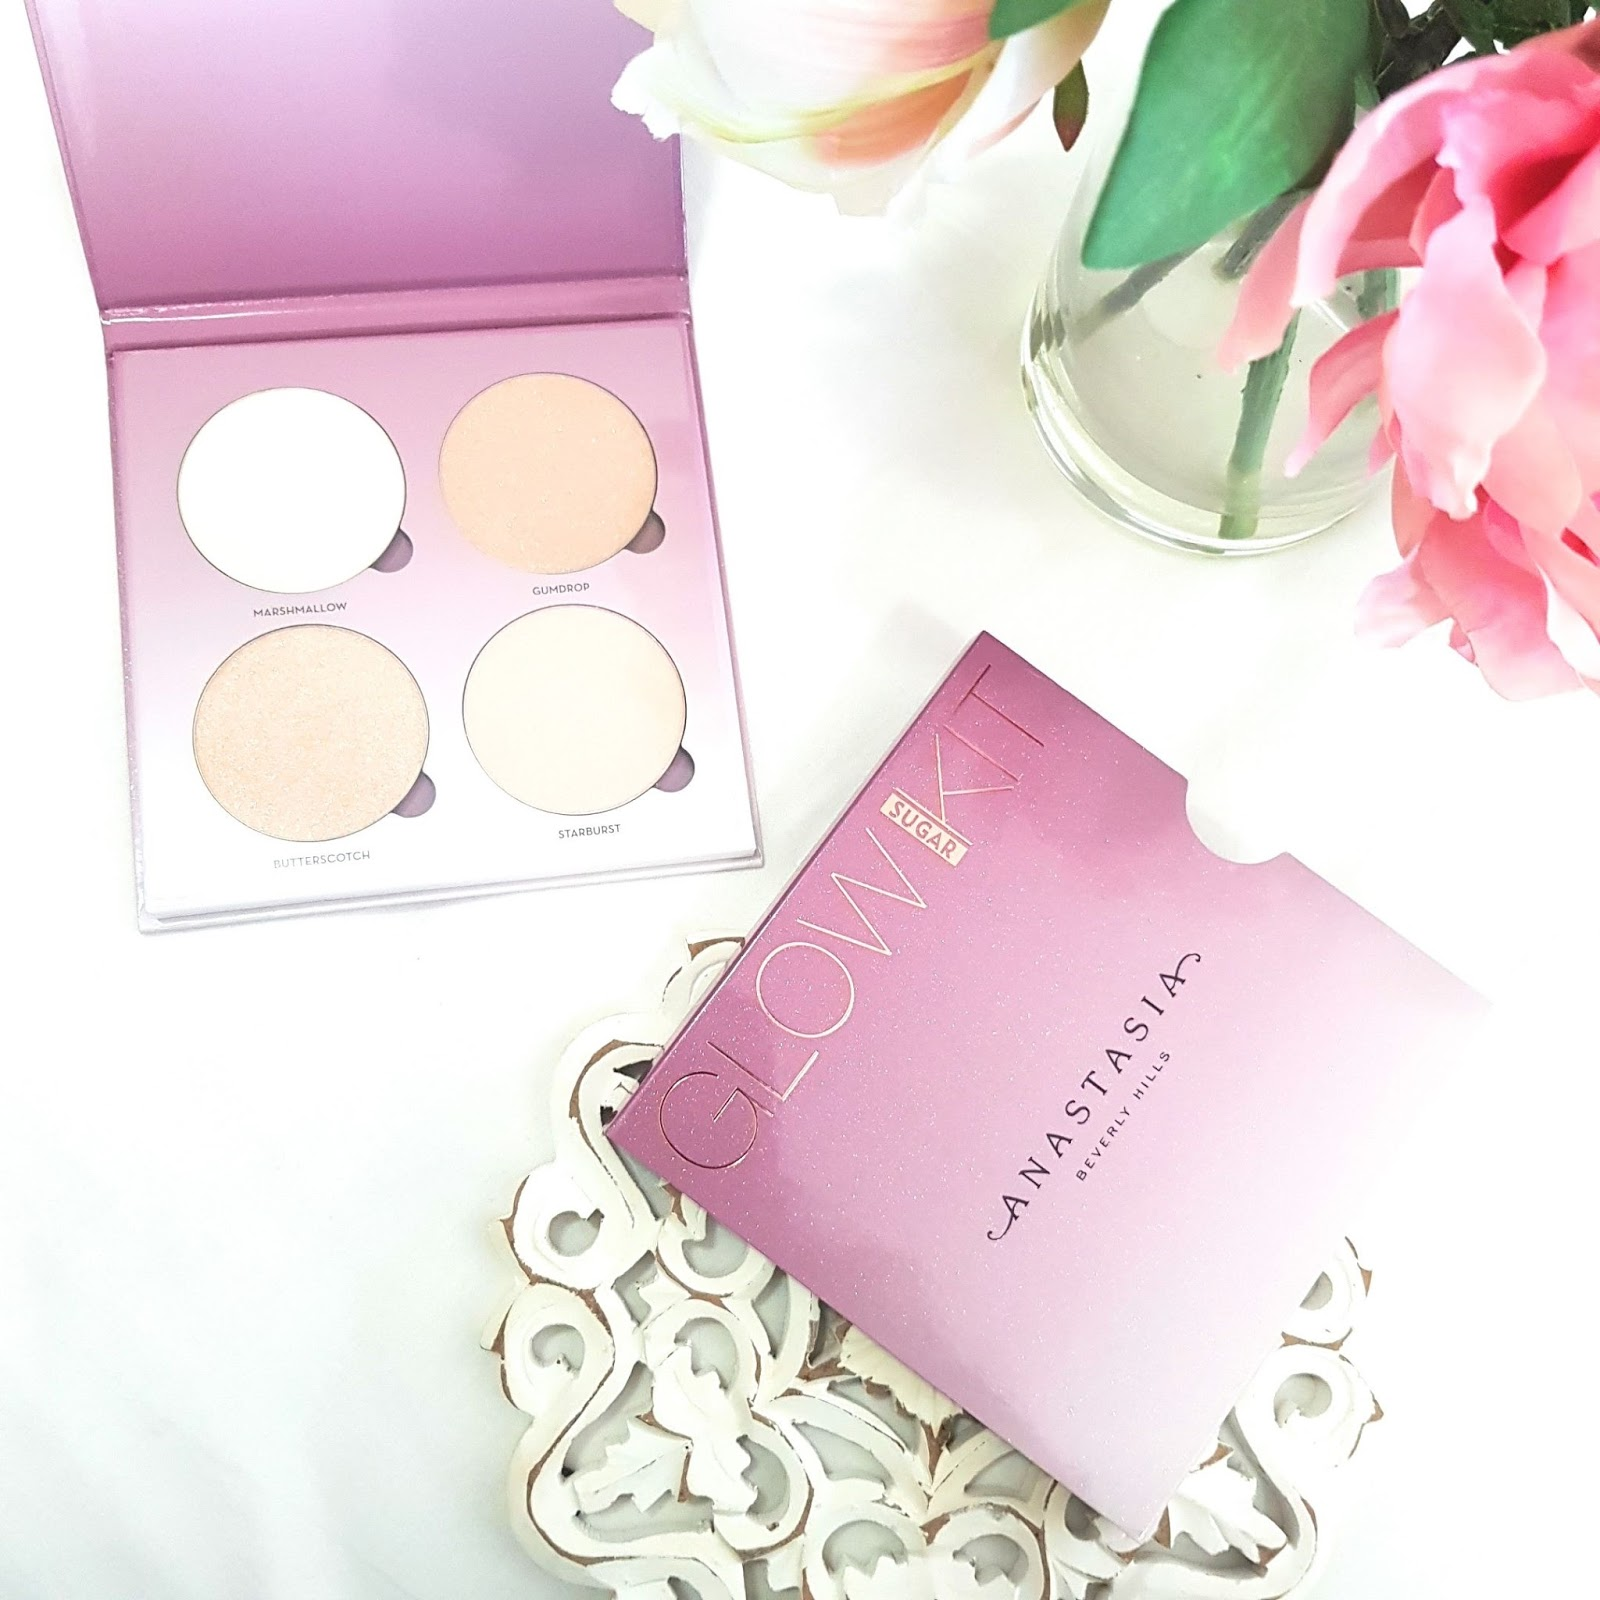 Anastasia Sugar Glow Kit - Vegan Makeup  - Best highlighters